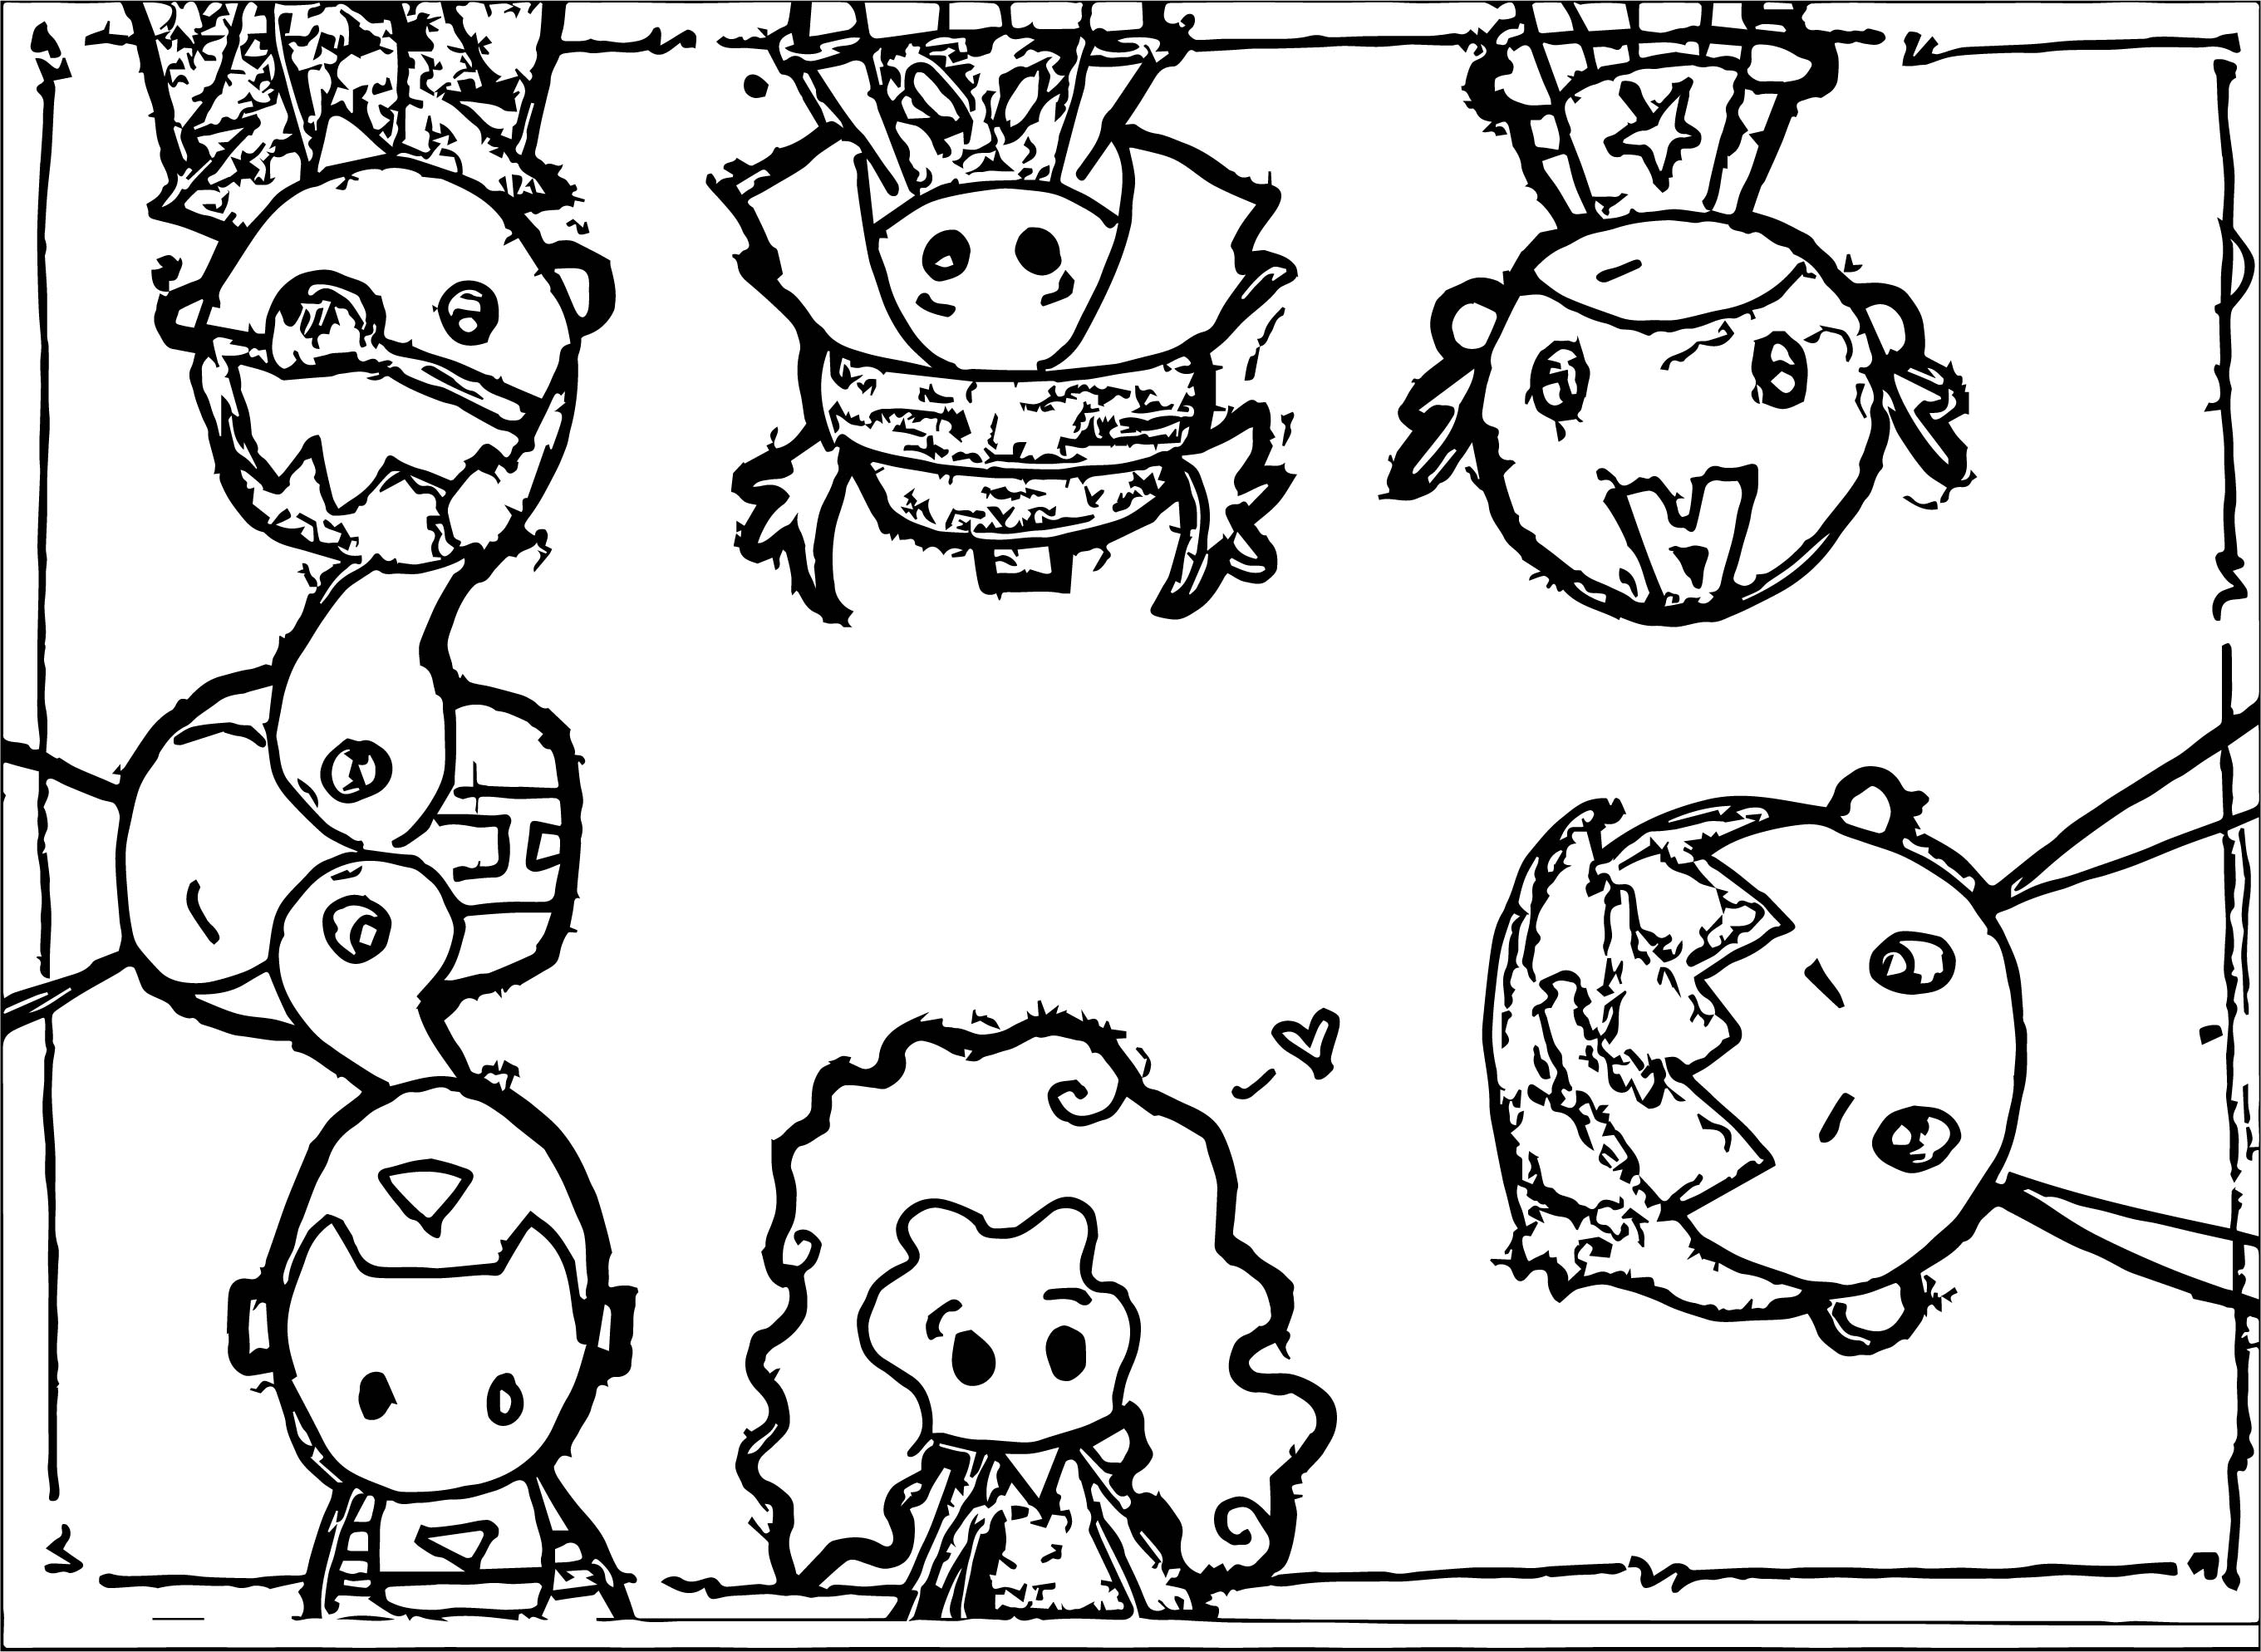 Tiny Avengers Coloring Page